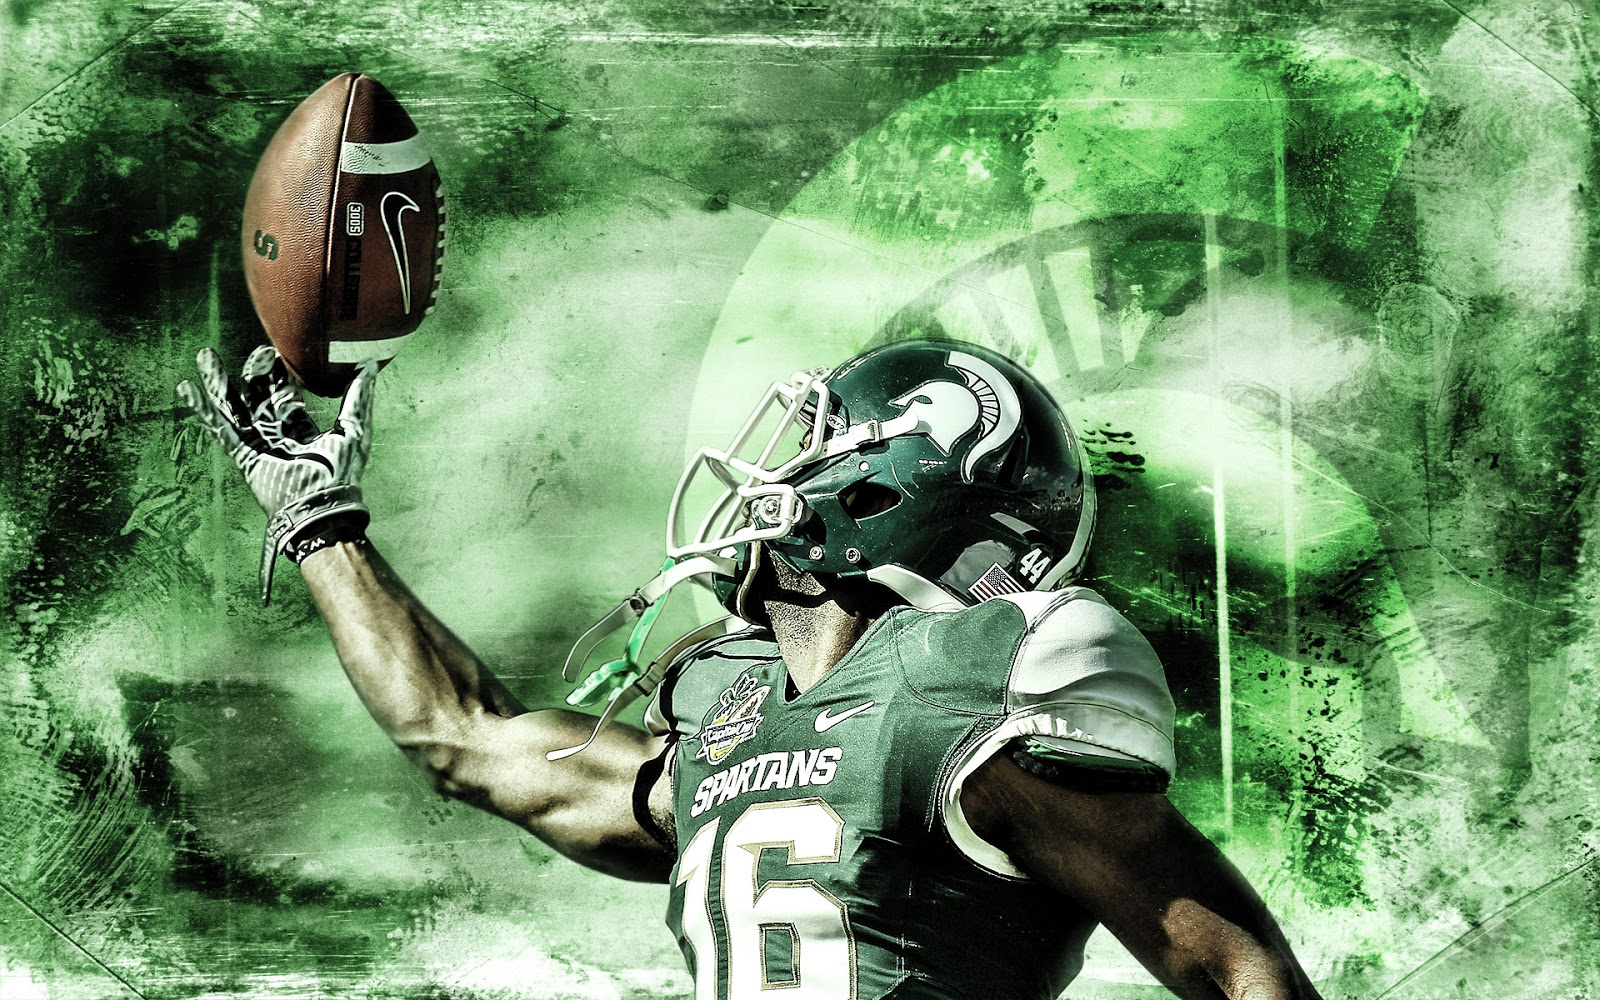 Michigan State Spartan Wallpapers Relay Wallpaper 1600x1000